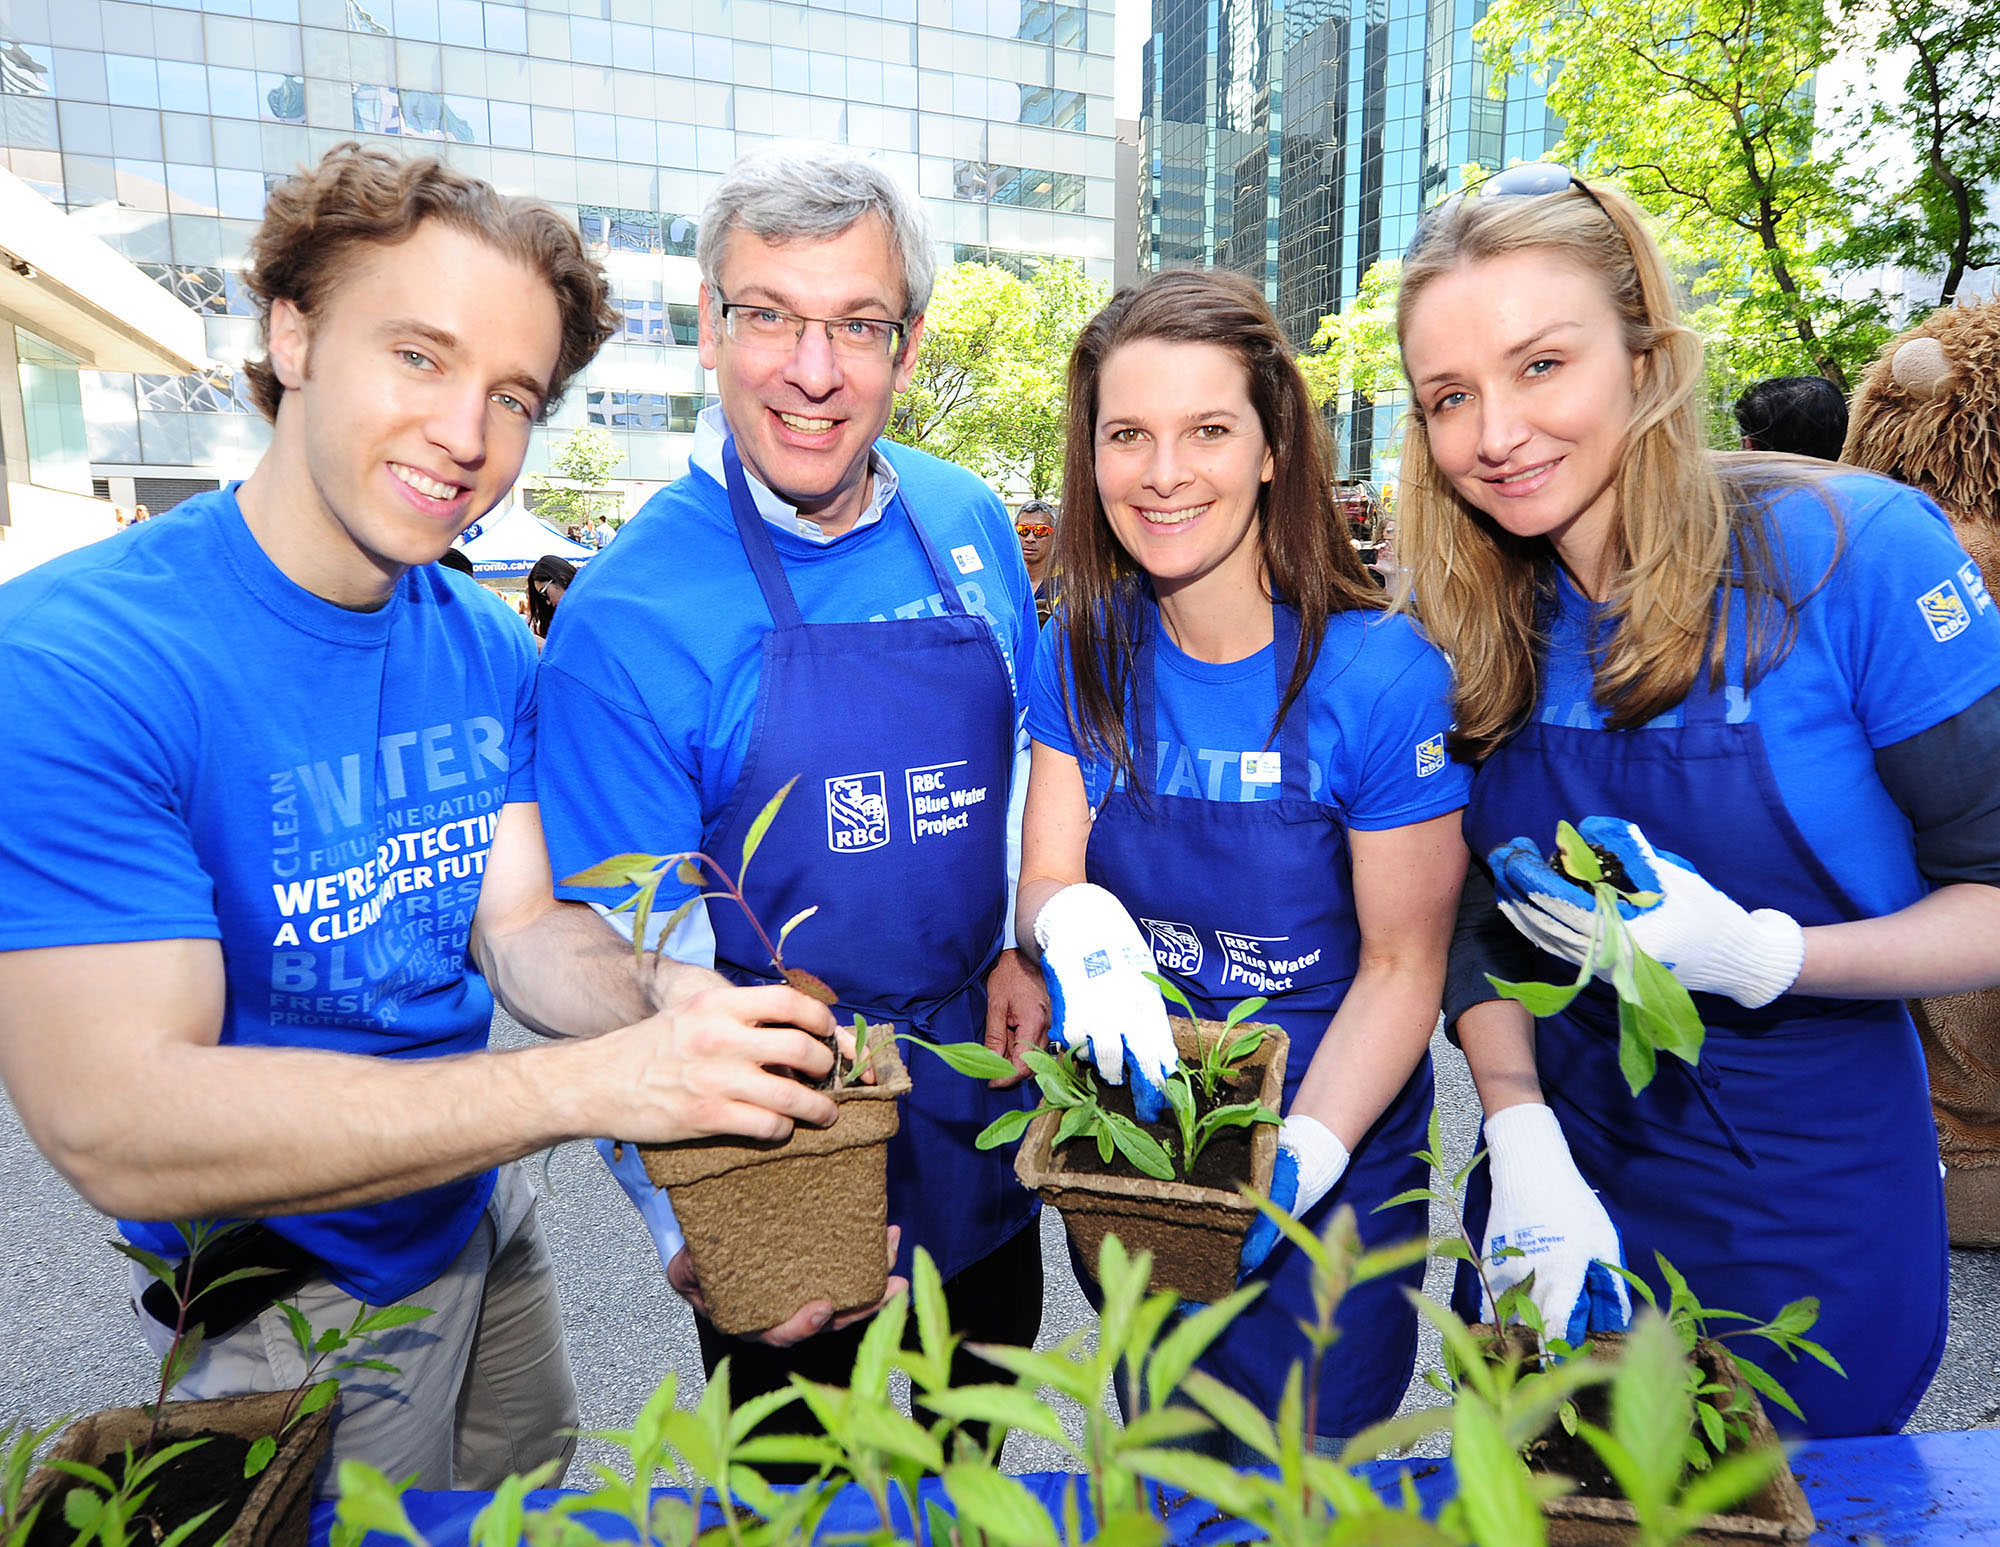 Dave McKay (Group Head, Personal & Commercial Banking, RBC) is joined by Craig Kielburger, Jennifer Botterill, Alexandra Cousteau and RBC employees who lent their 'blue thumbs' to help plant thousands of water-friendly gardens in Toronto today to celebrate RBC Blue Water Day 2013. The more than 2,500 gardens were transplanted to the lower Don Valley River and Rouge Park to help protect water in Toronto. (CNW Group/RBC).